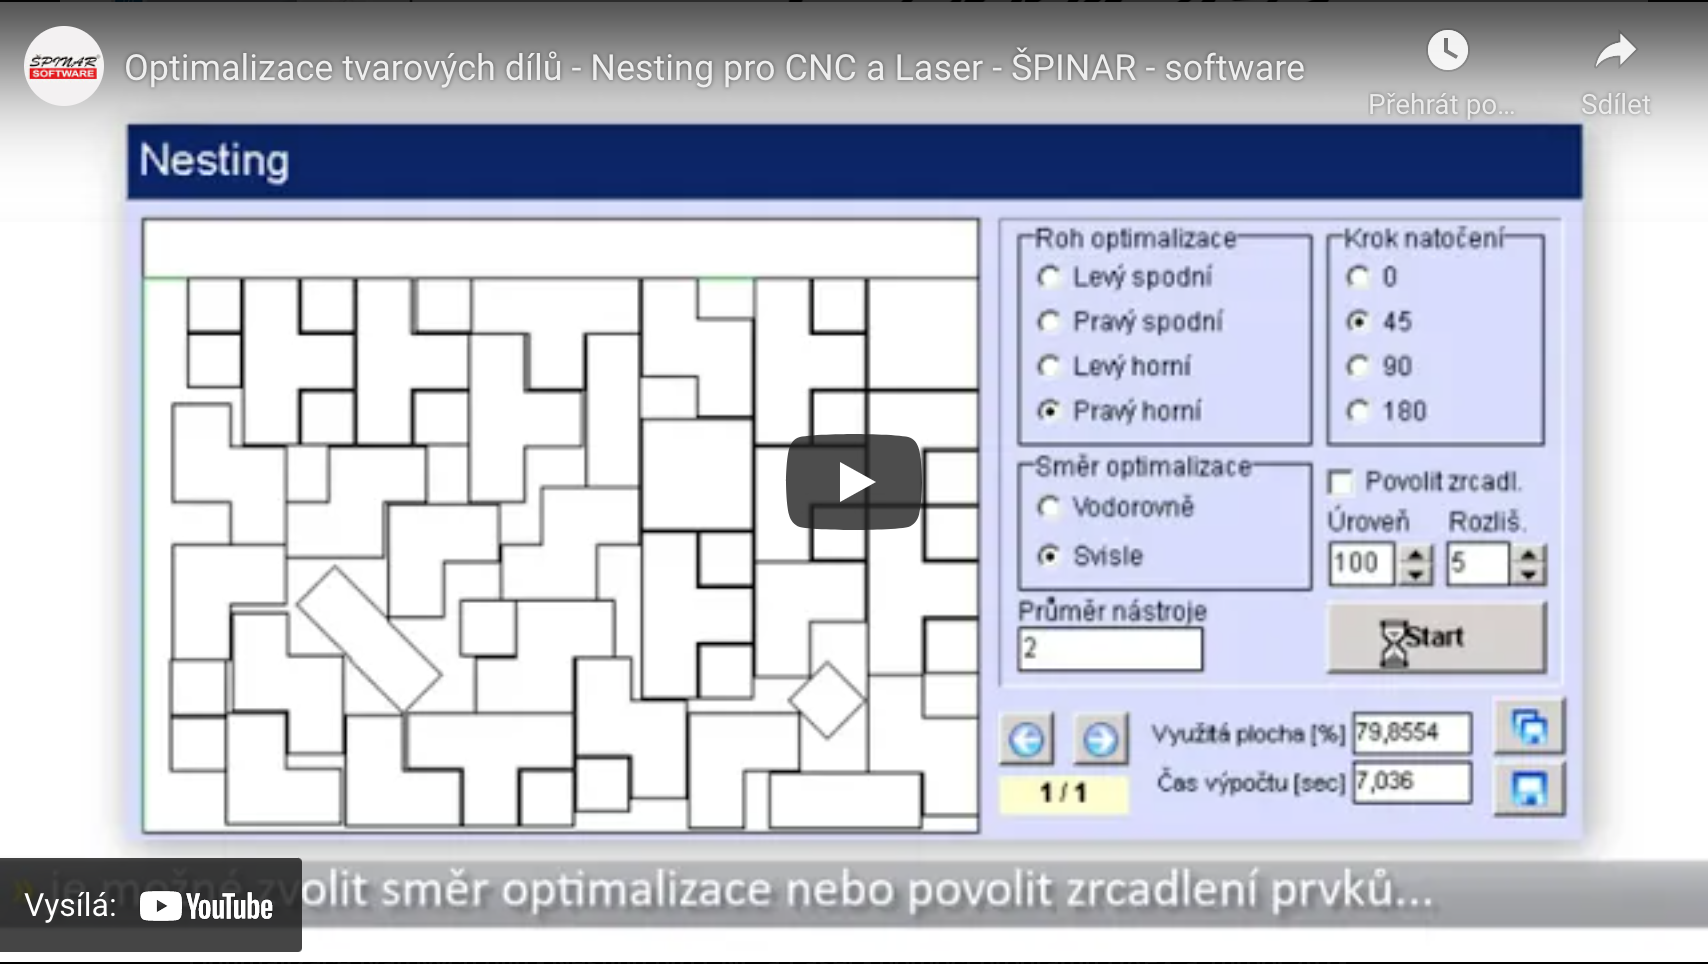 optimalizace tvarovych dilu - DAEX CUT Optimalizátor Basic 21